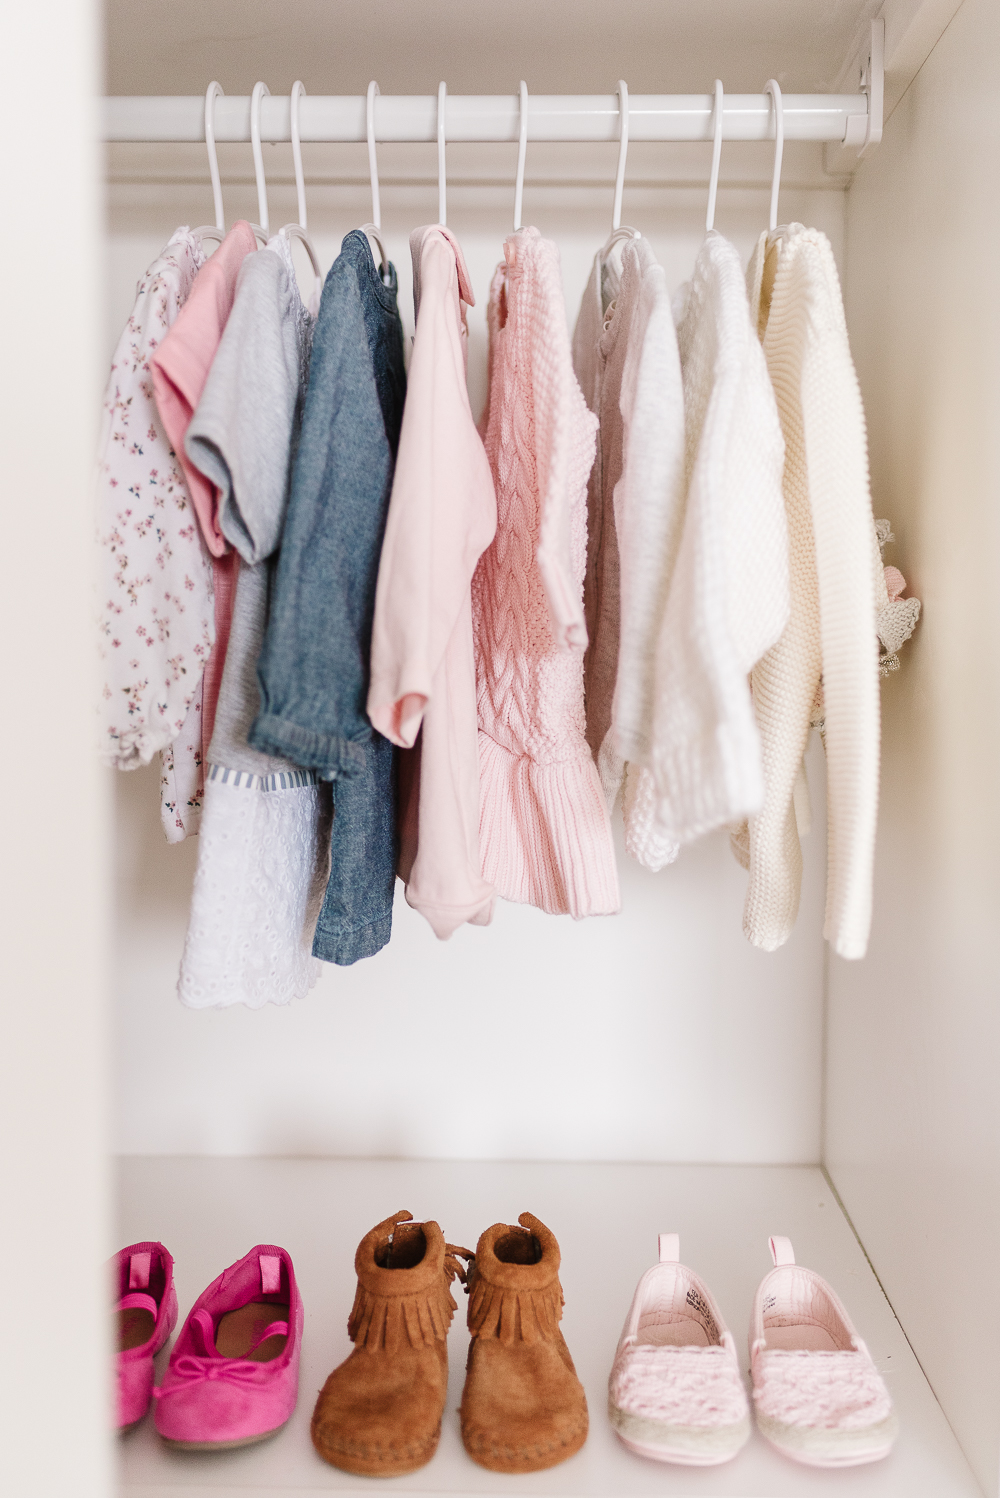 Hanging clothes and shoes in closet organization system